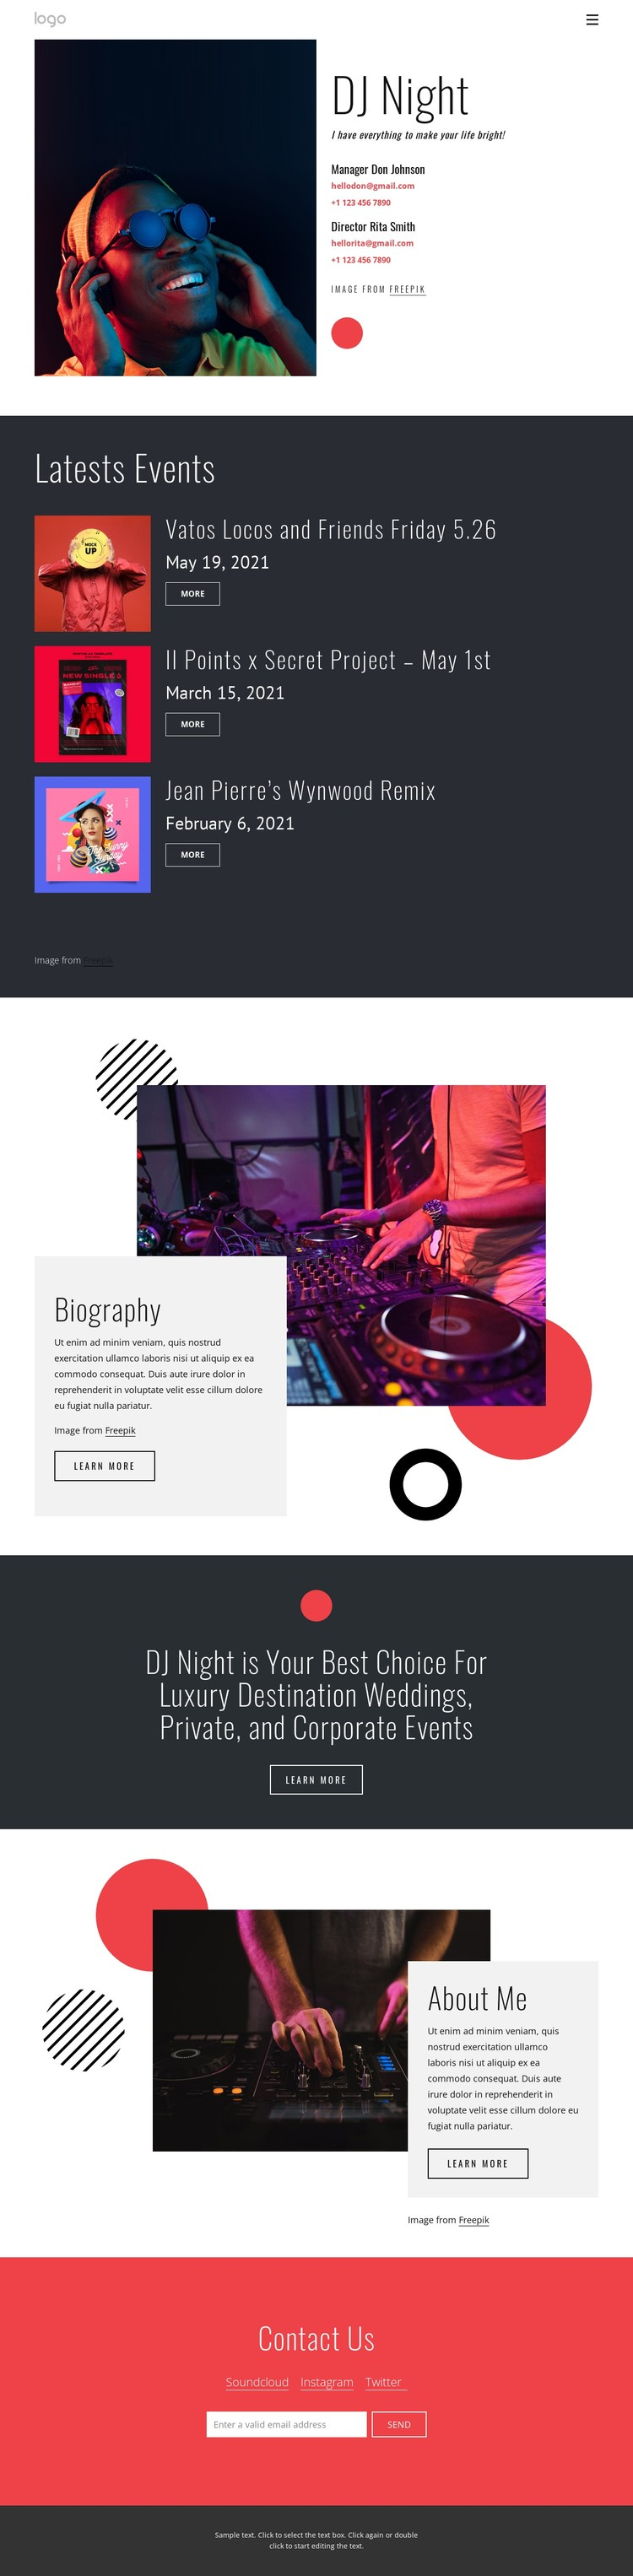 Dj night website CSS Template